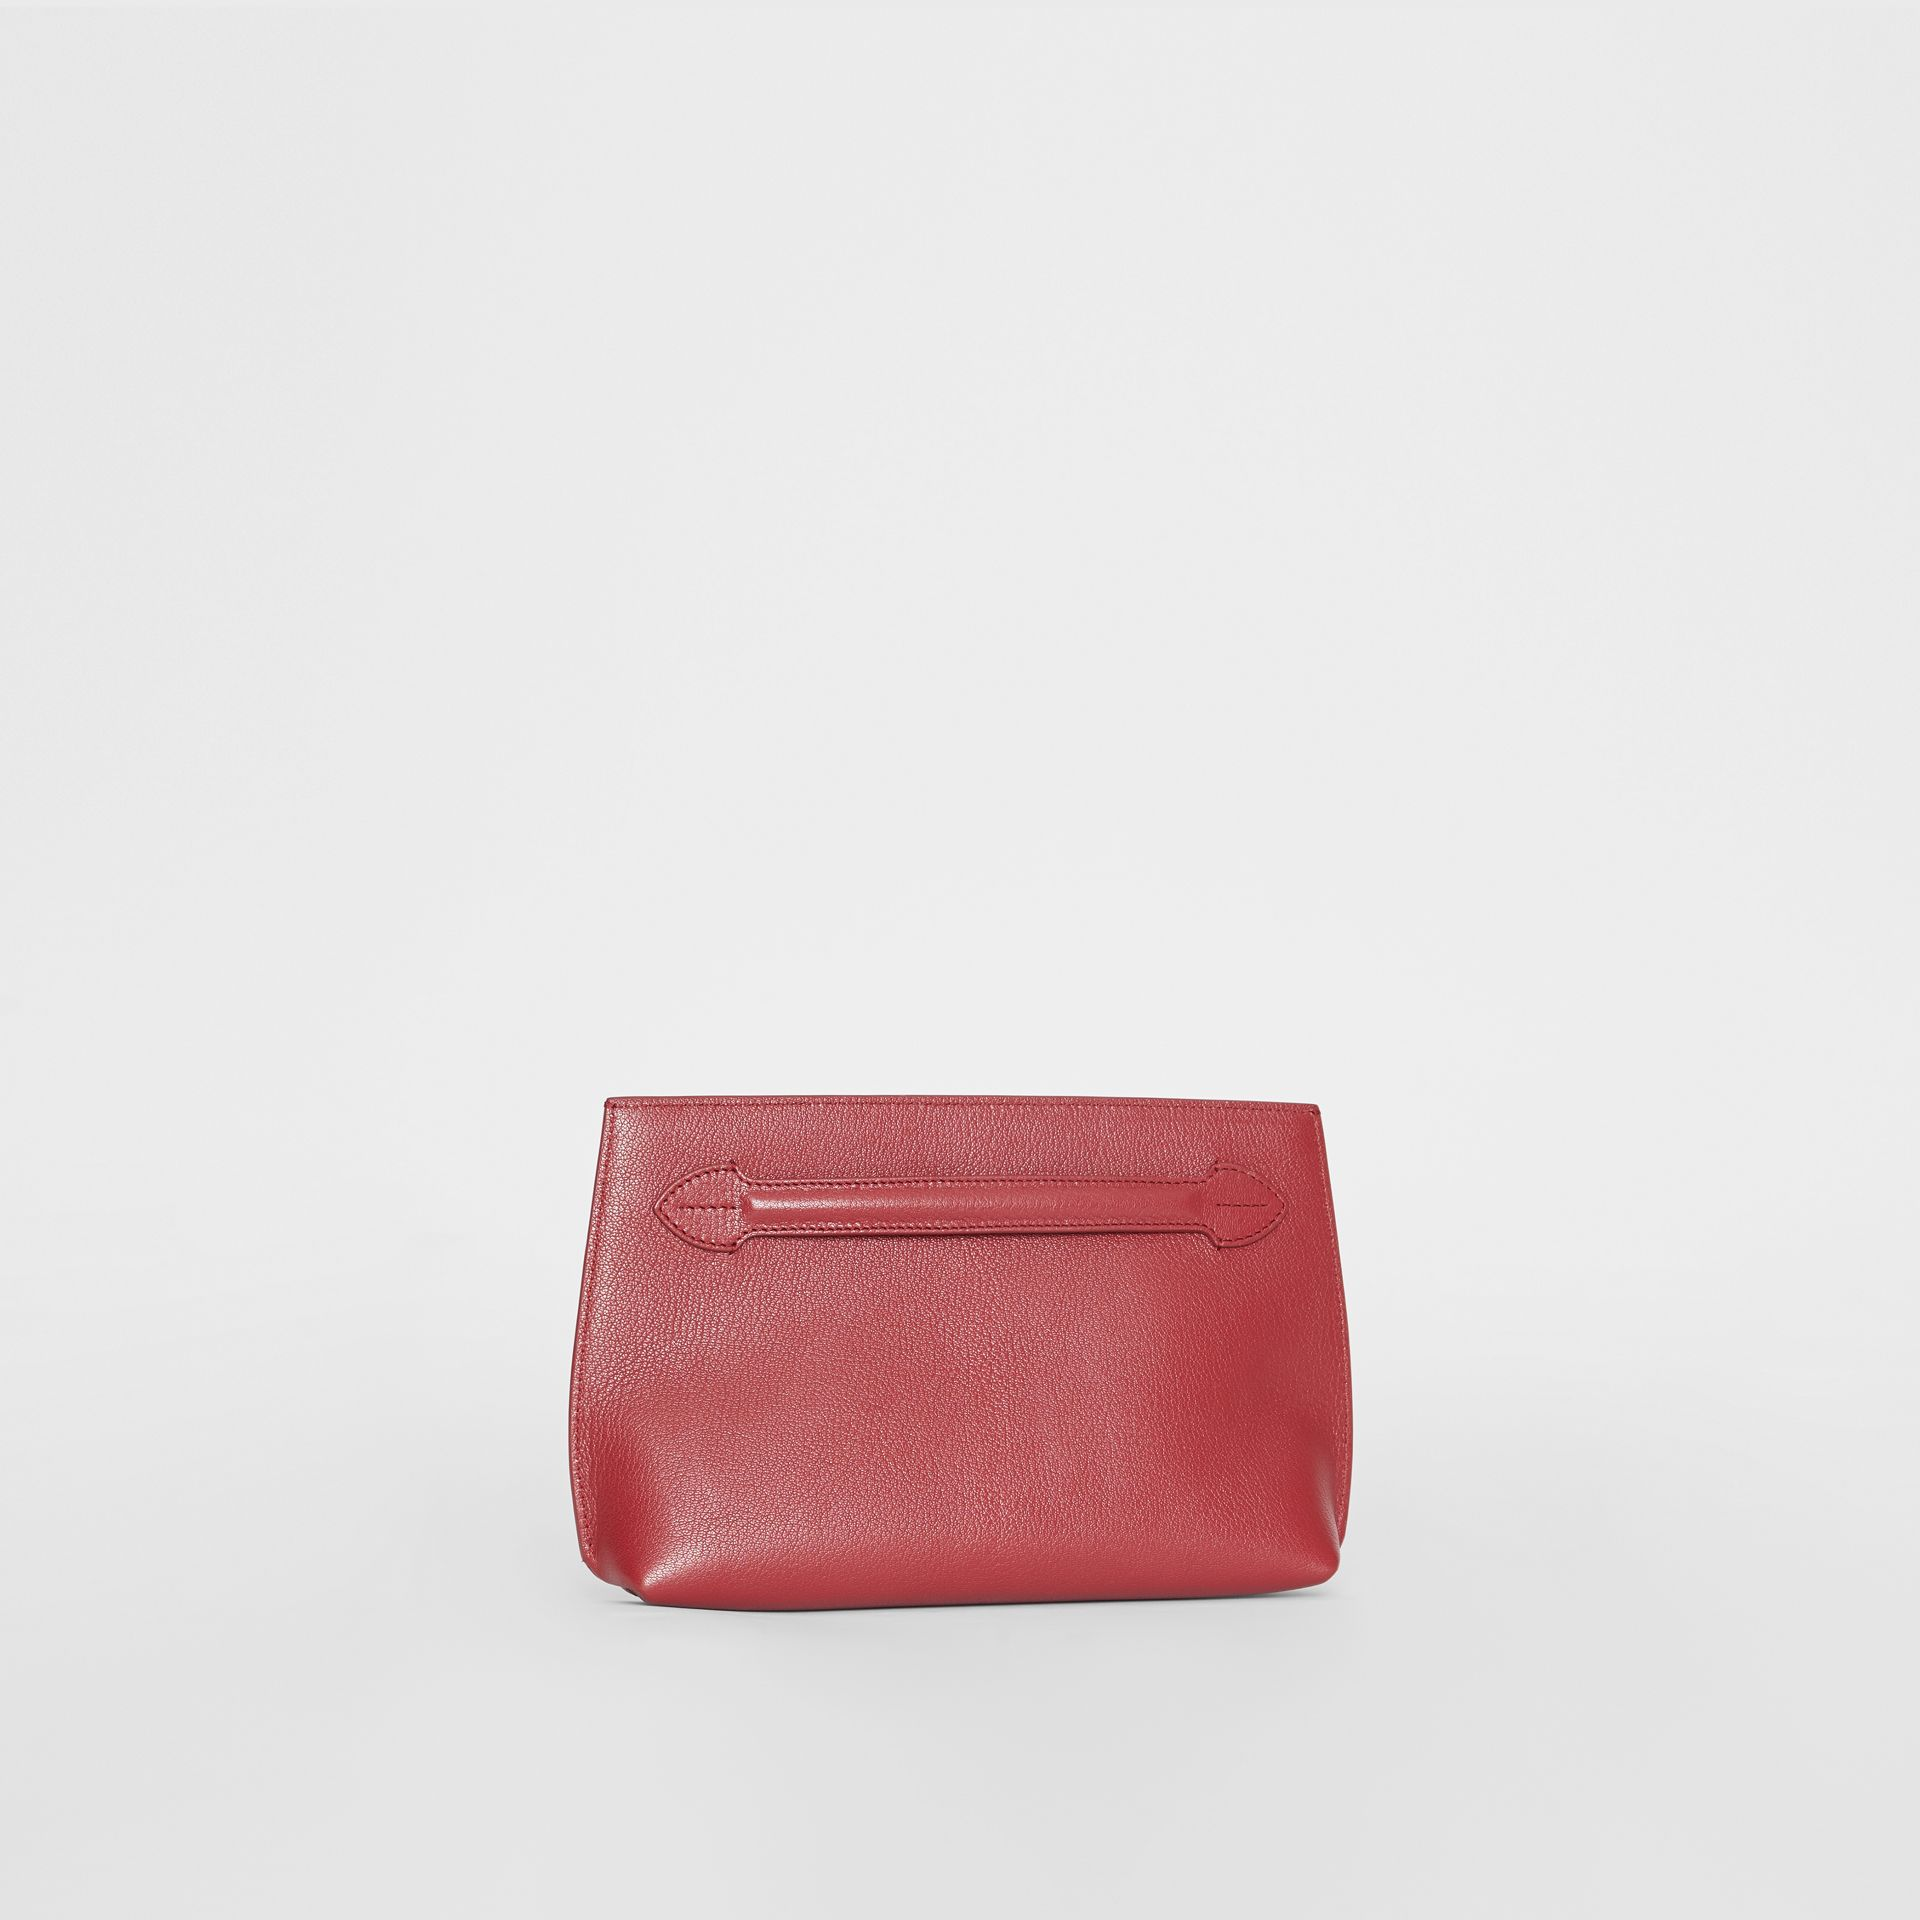 Grainy Leather Wristlet Clutch in Crimson - Women | Burberry United States - gallery image 6